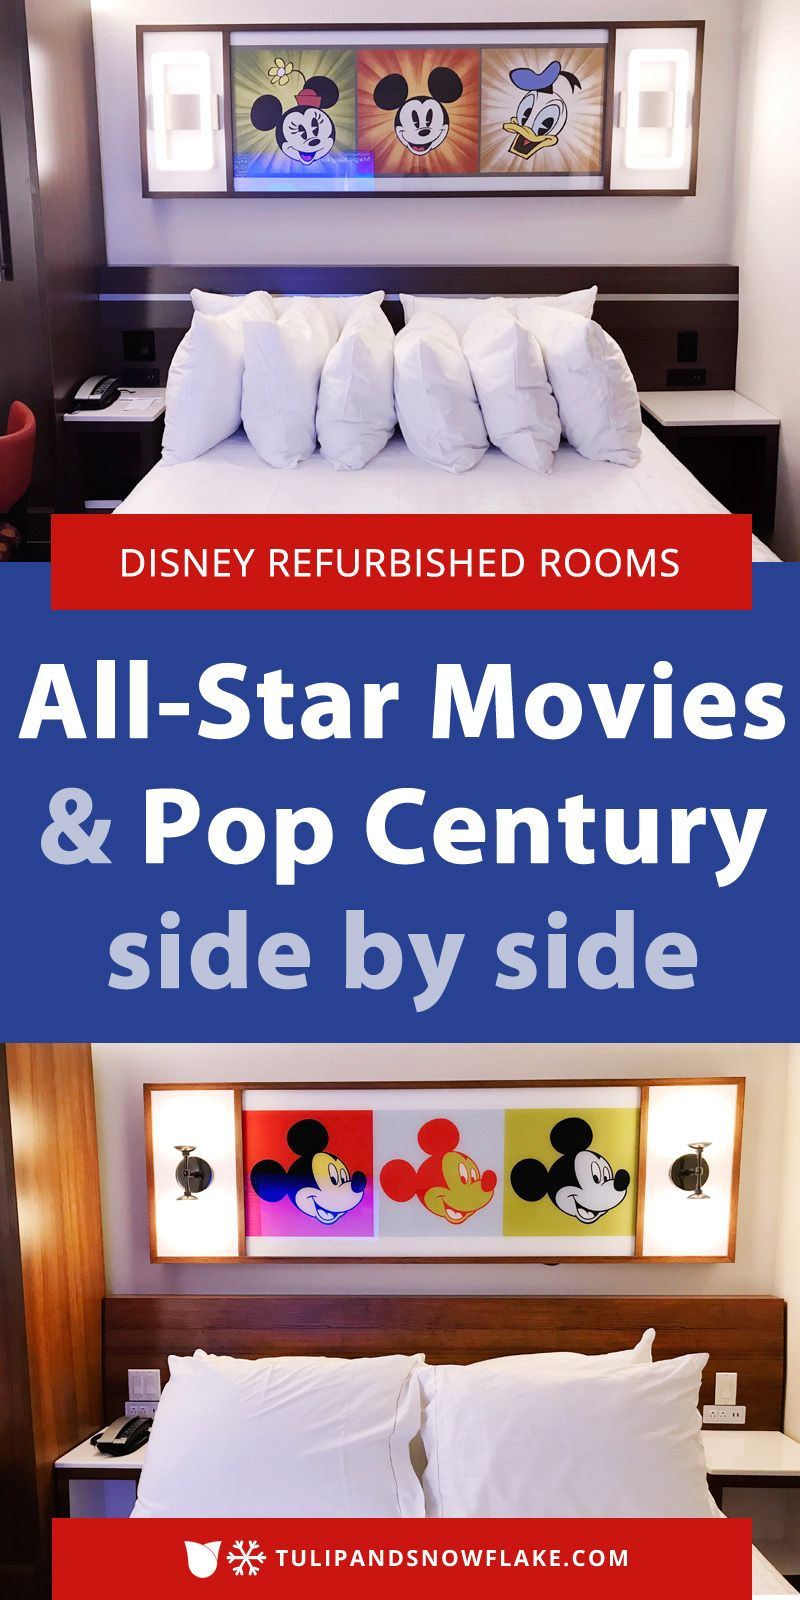 Disney S Pop Century And All Star Movies Refurbished Rooms Side By Side Disney Pop Century Disney Pop Disney Value Resorts